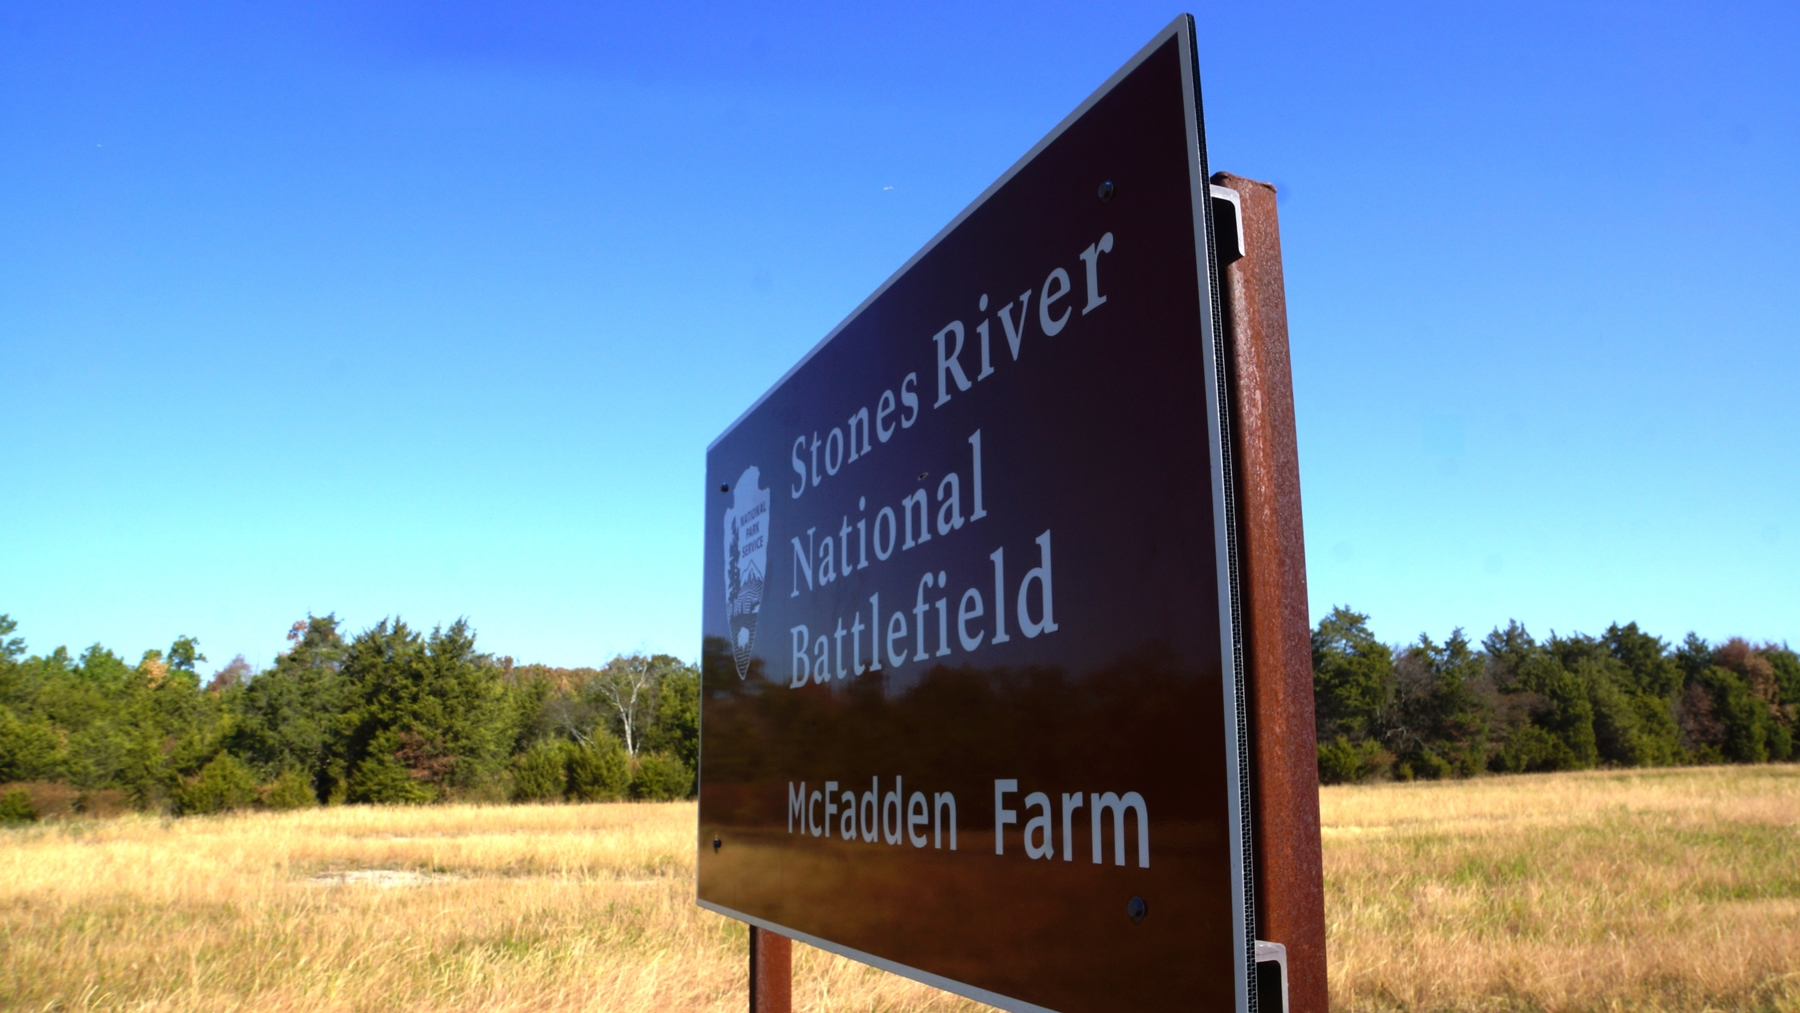 Image result for stones river conflict mcfadden's farm